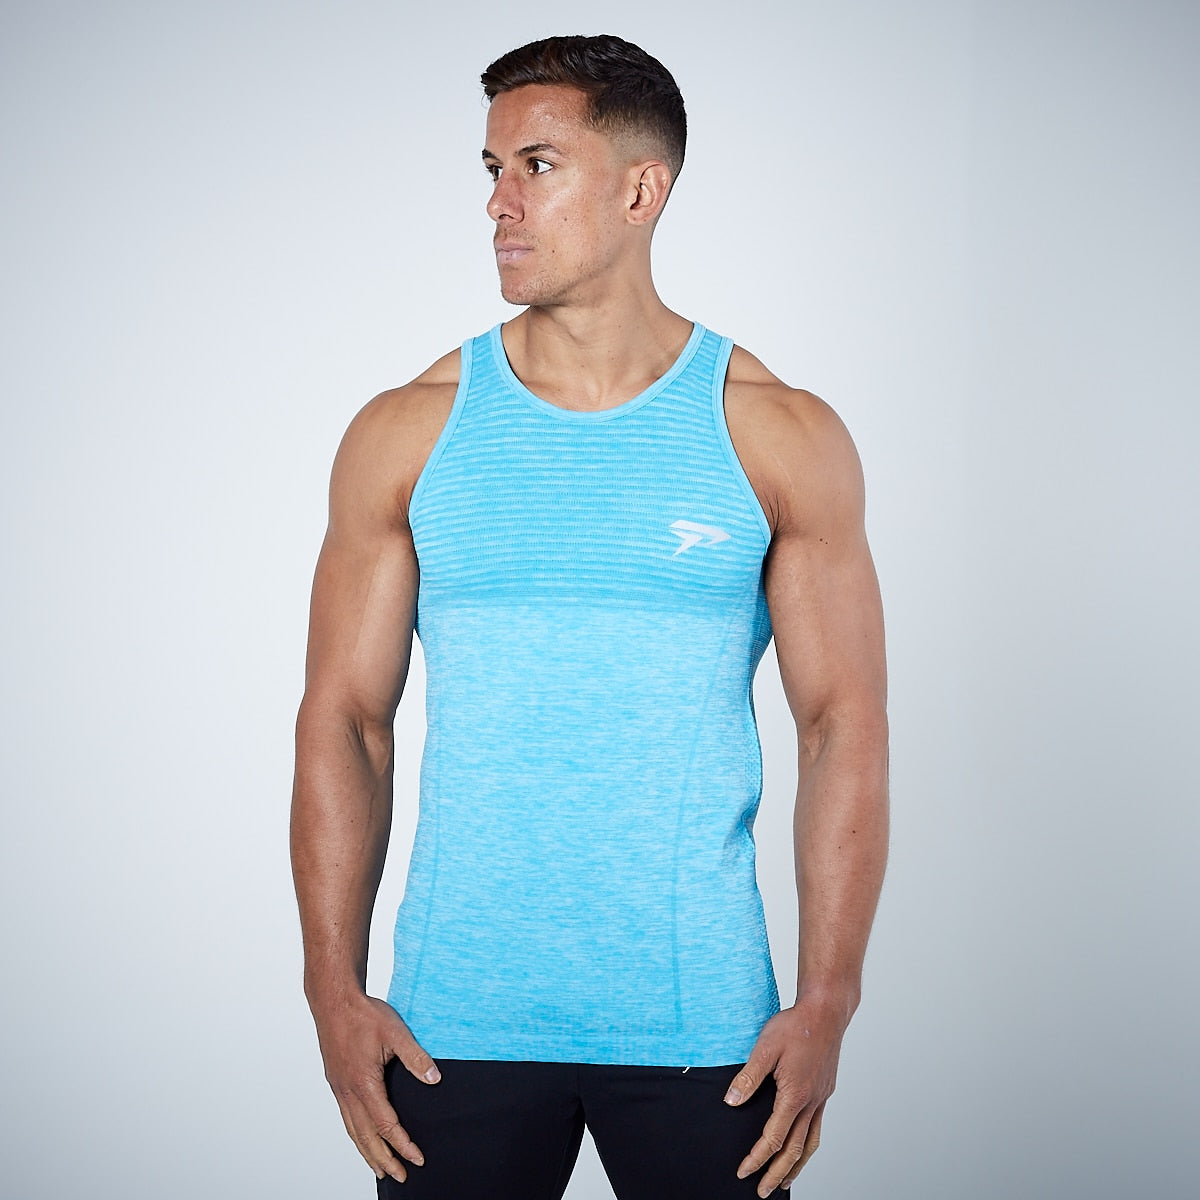 Physiq Apparel - HyperKnit Tank Top - Aqua